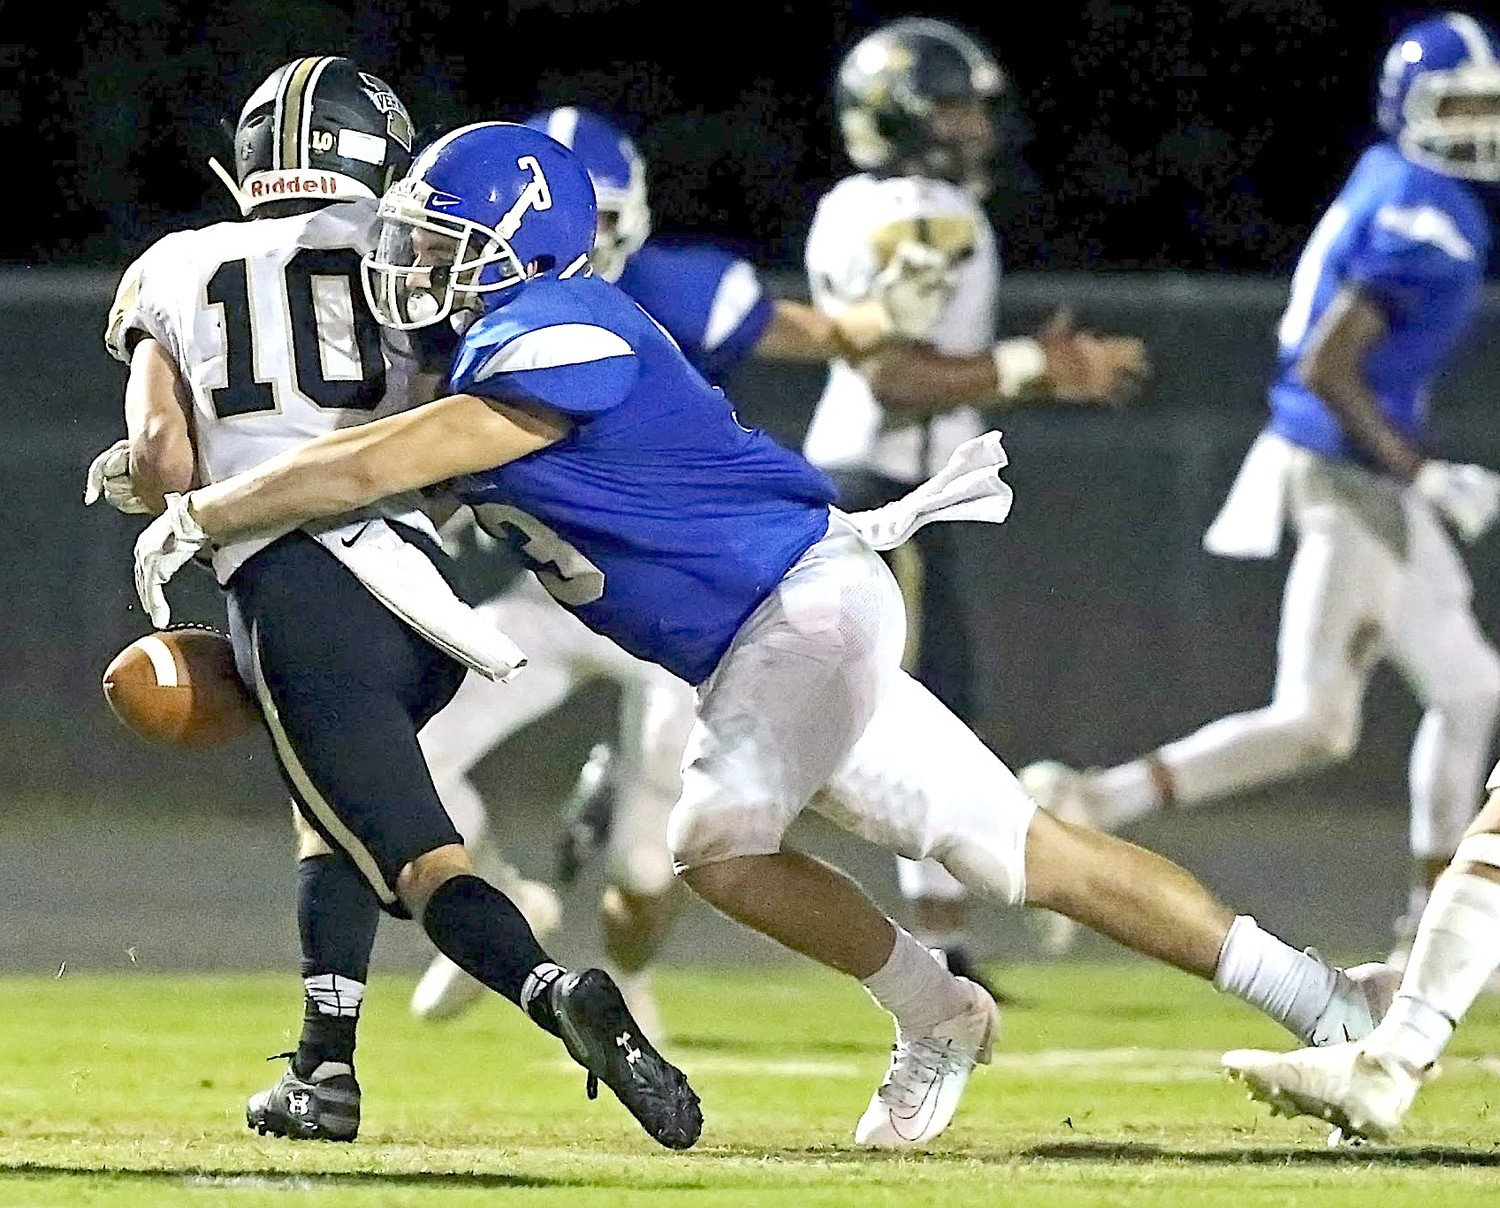 Carbon Hill's Alex Atkins (3) causes a fumble late in Friday night's home game against Lamar County. Atkins had 17 tackles, including a sack and four tackles for loss in the 34-20 victory.